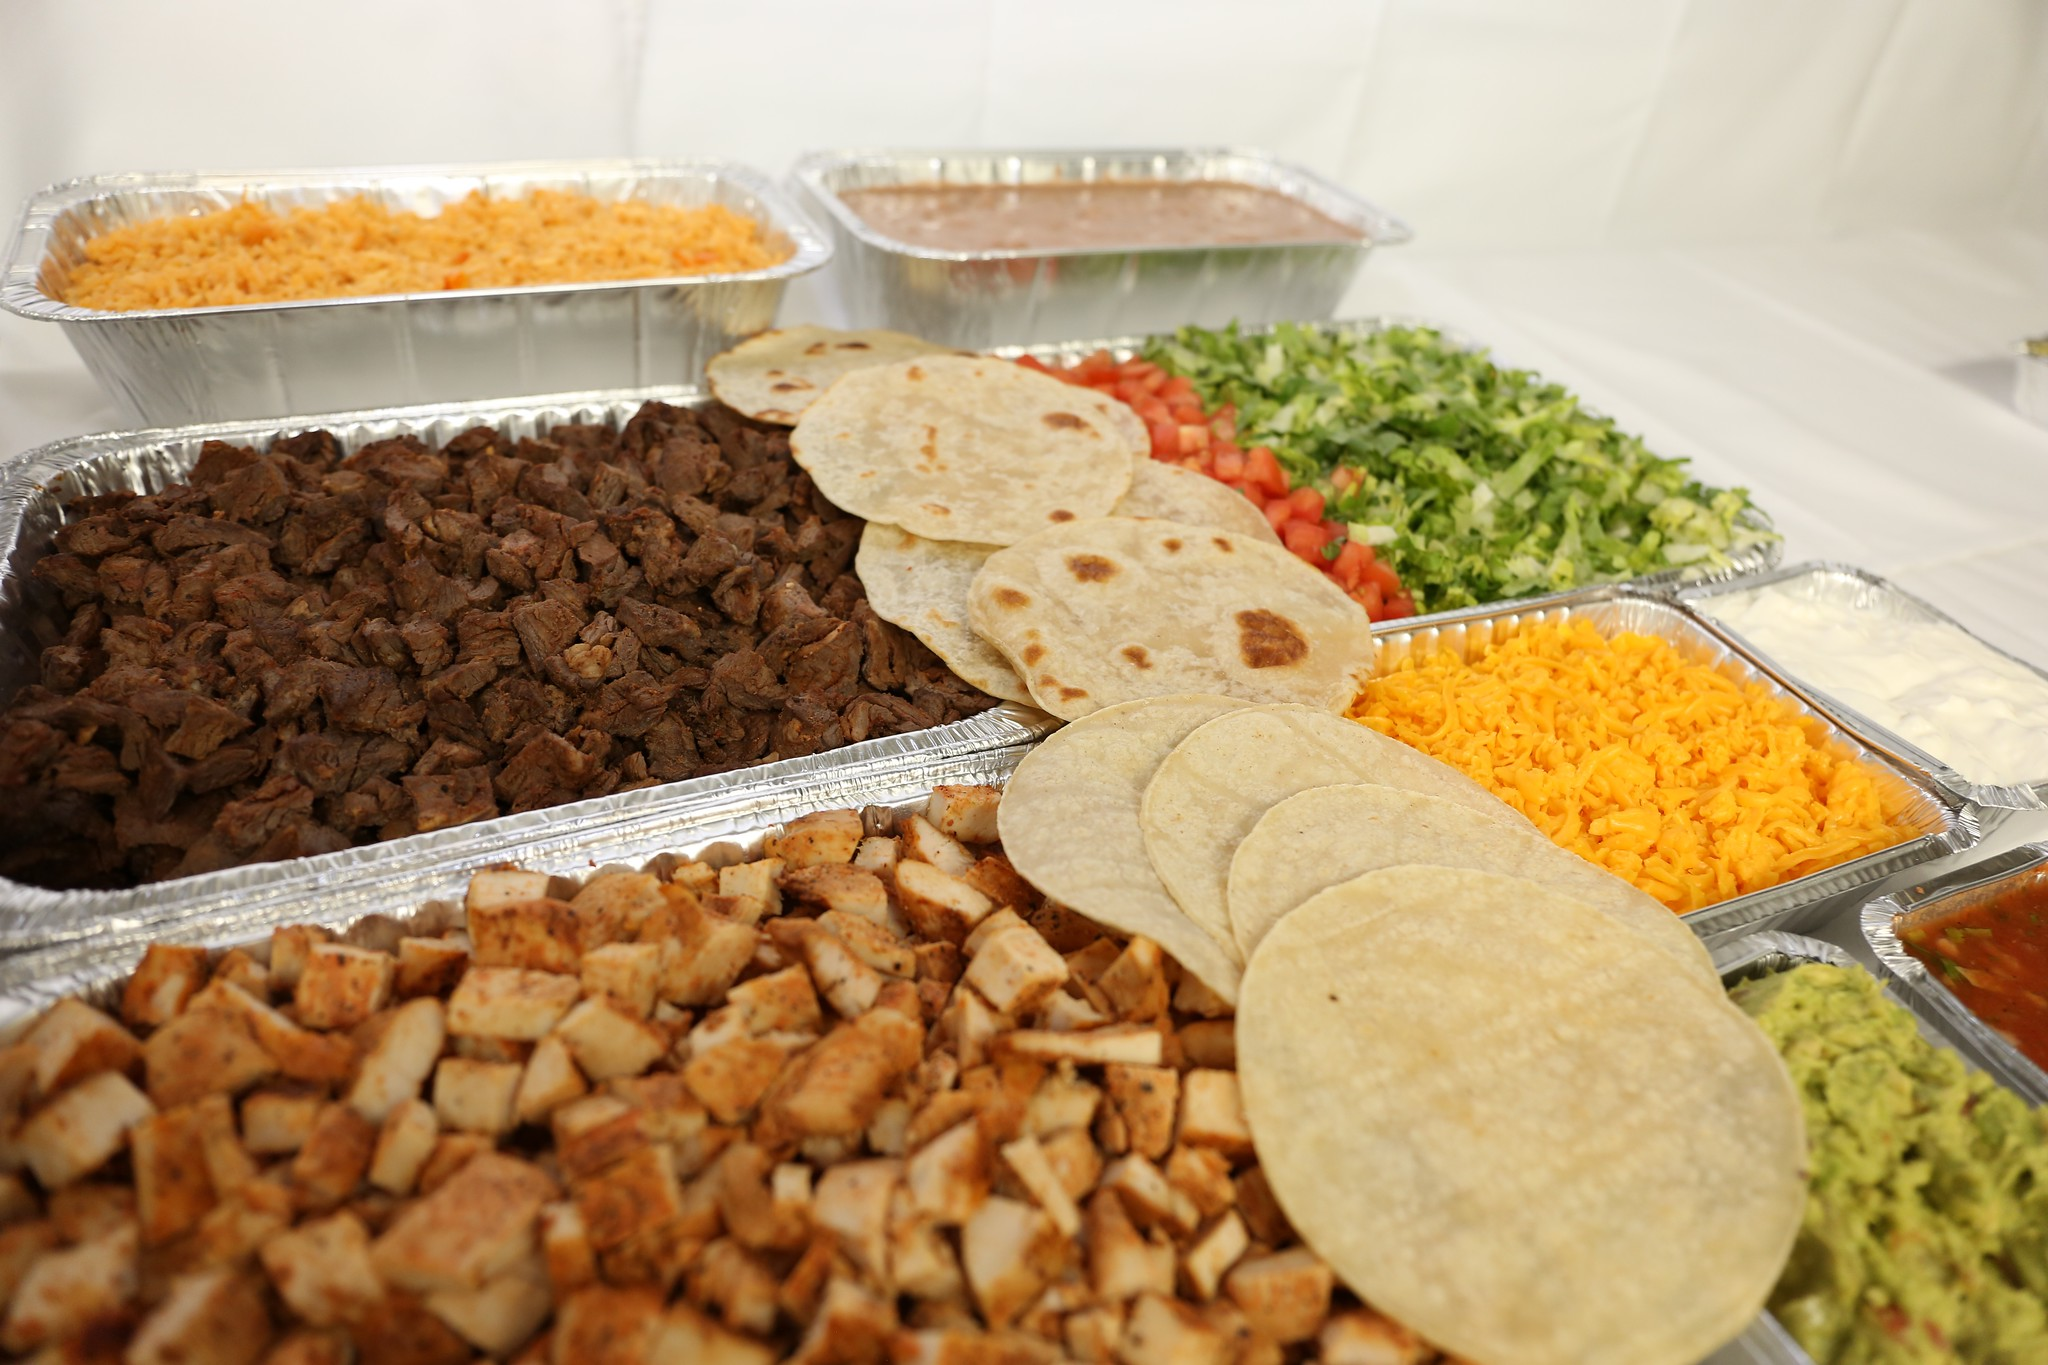 Fajita Catered Spread with Tortillas and Toppings